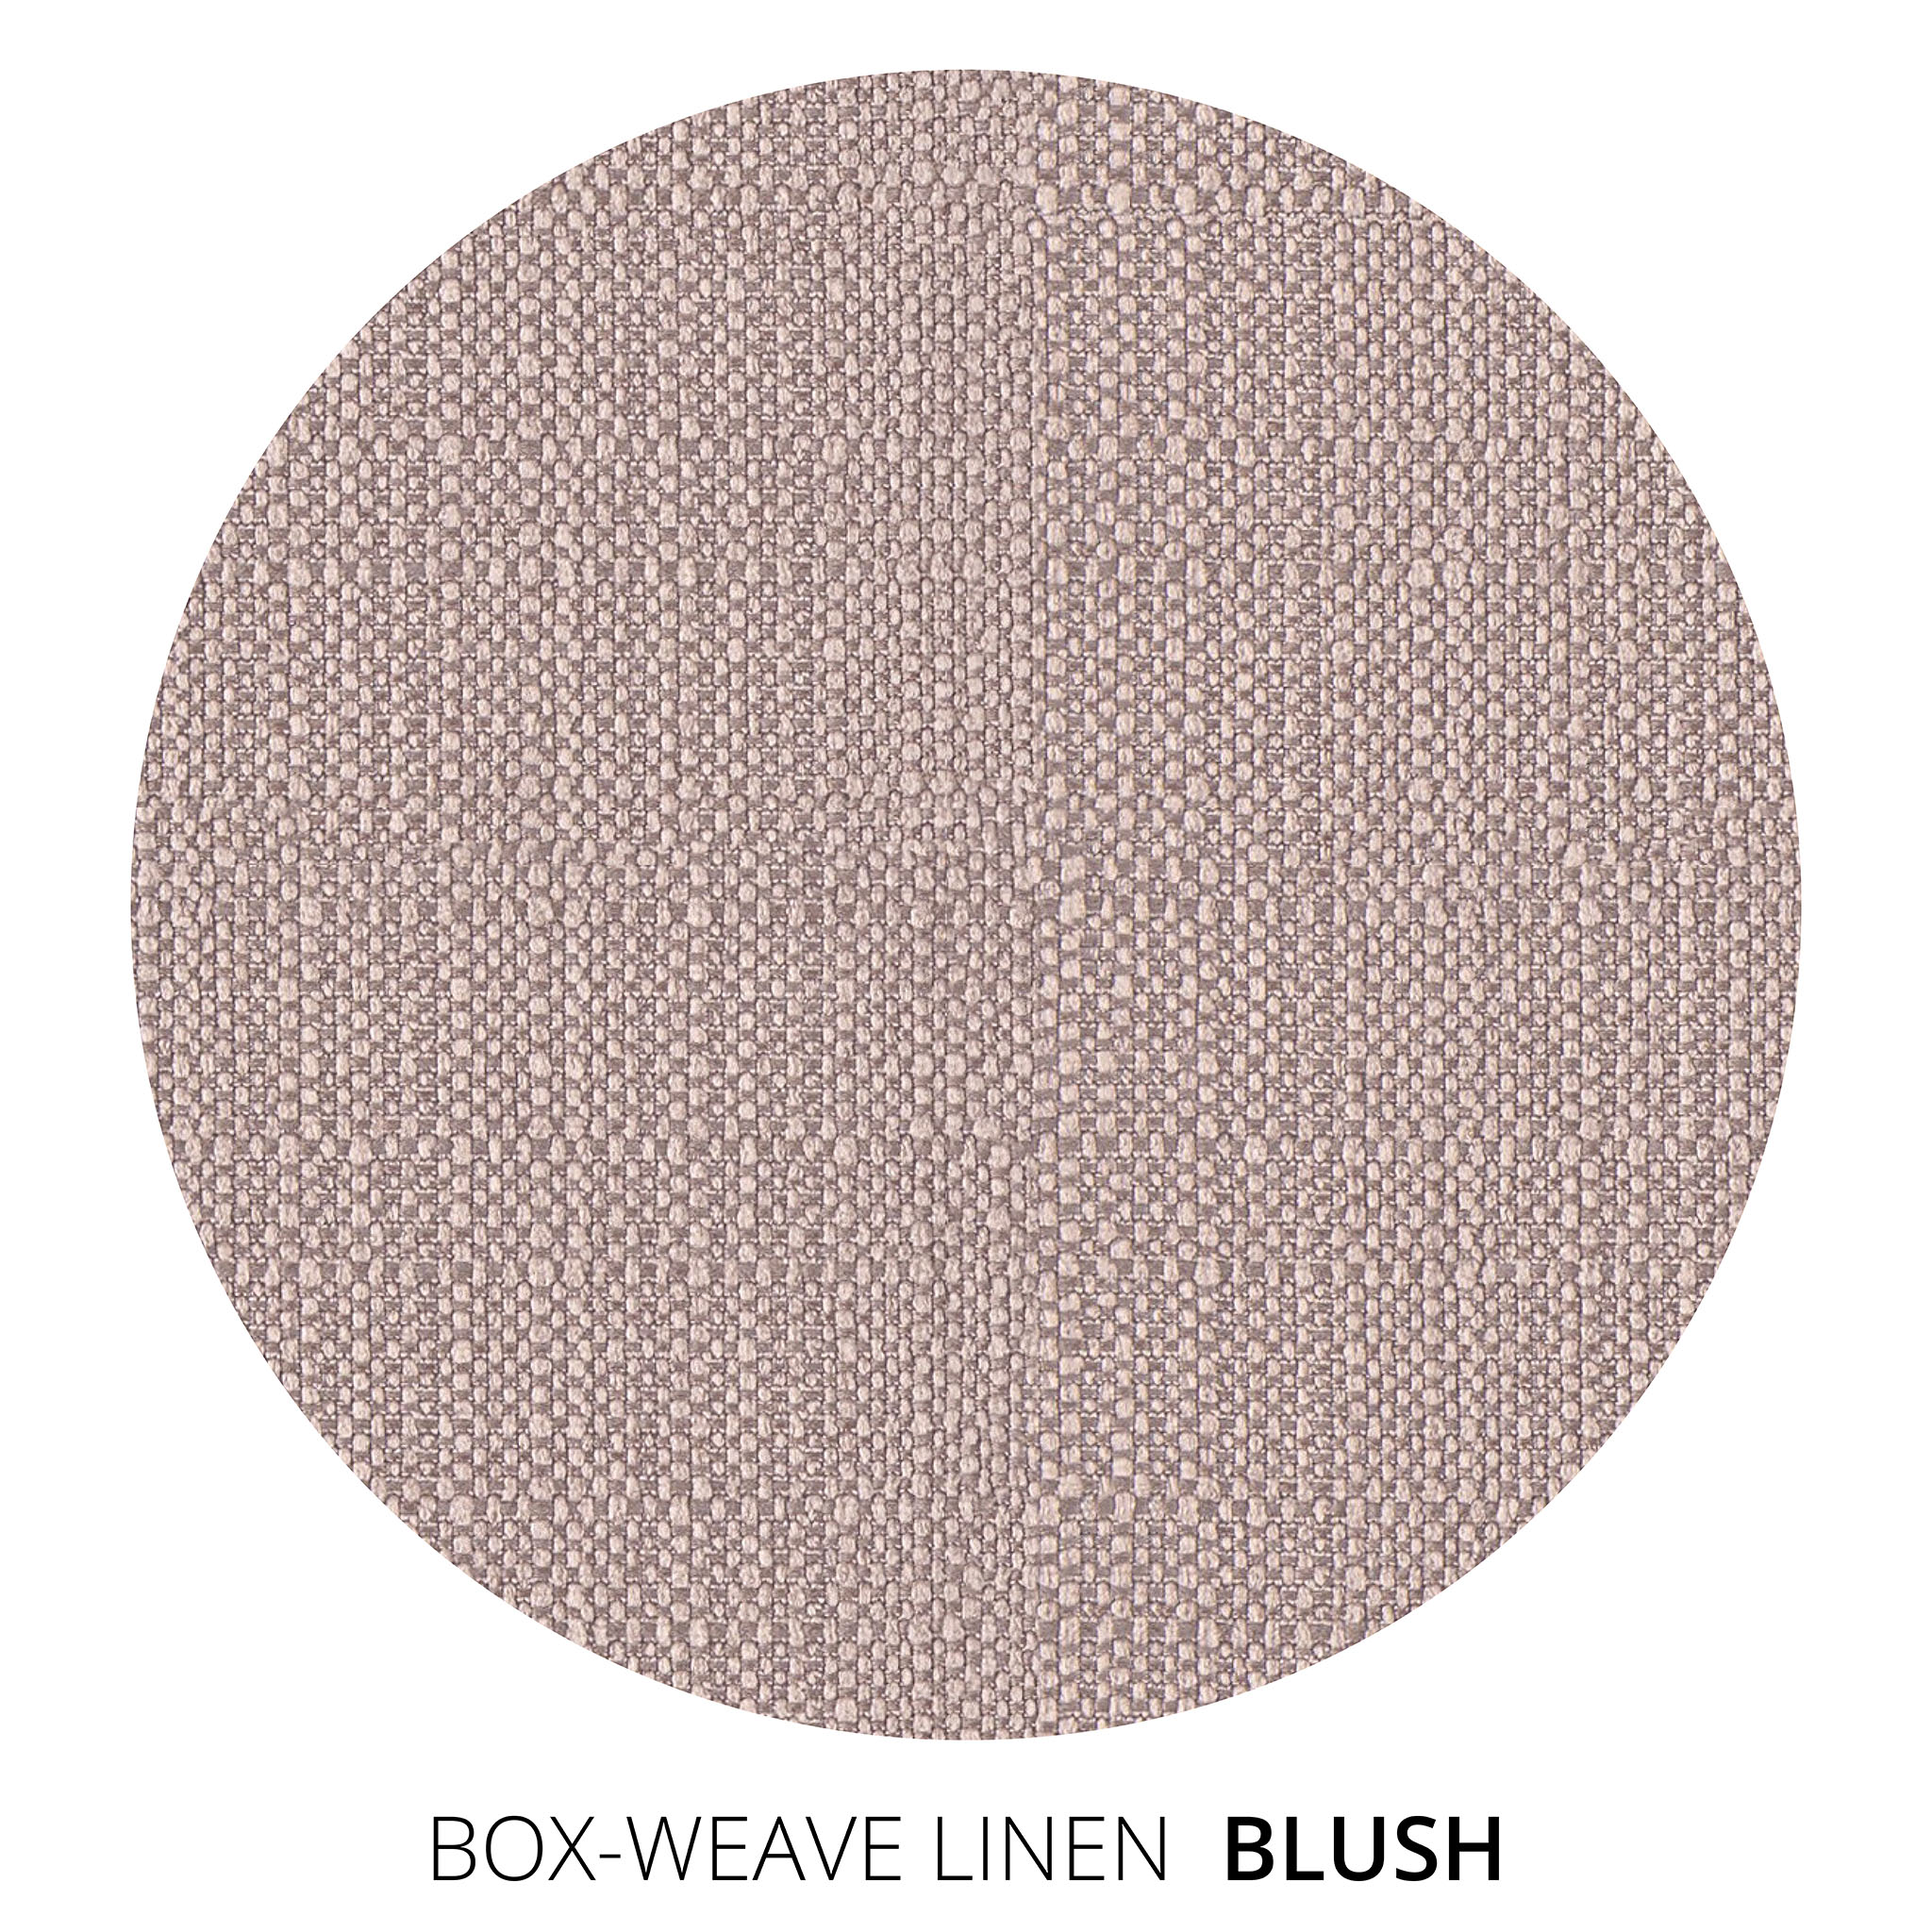 Blush Box Weave Linen Swatch